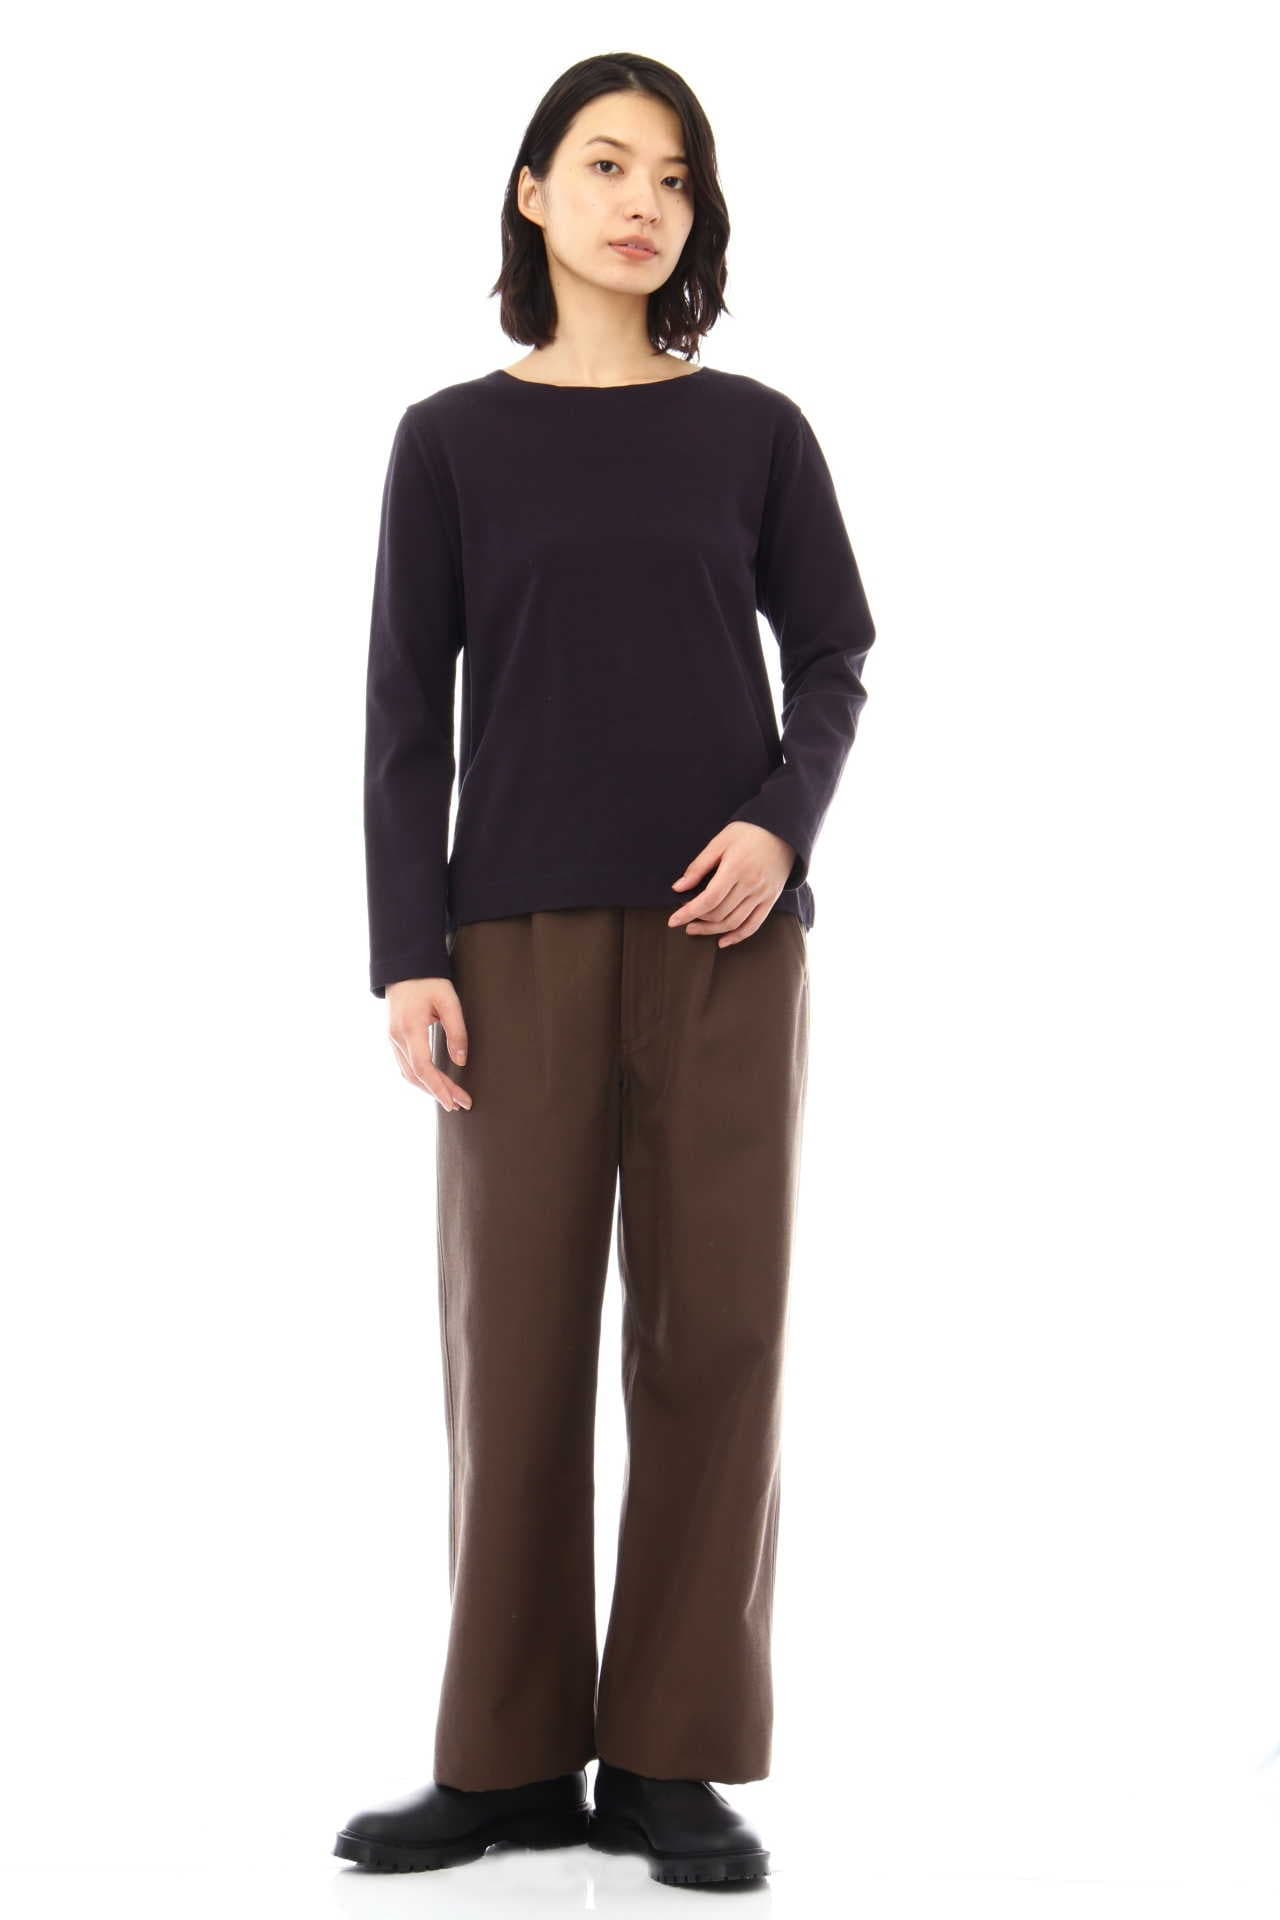 DRY COTTON JERSEY13